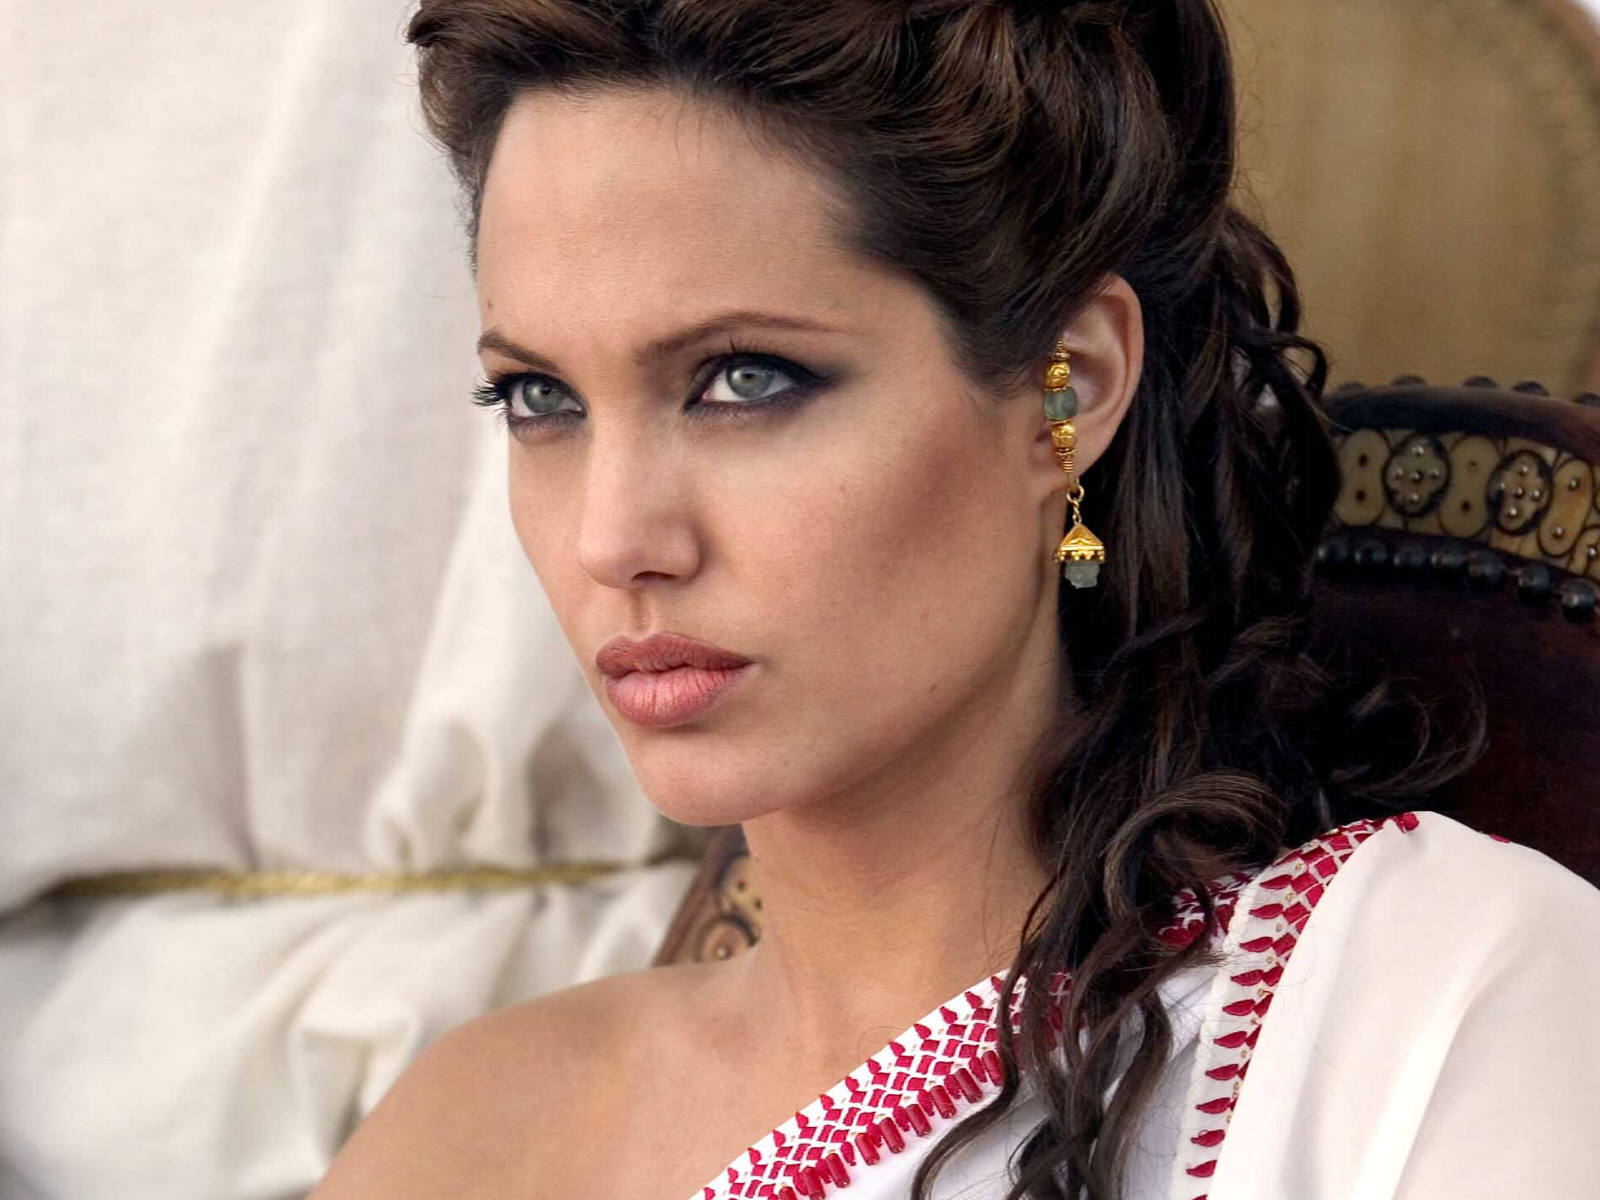 Angelina Jolie Nude Pics and Videos - - Top Nude]